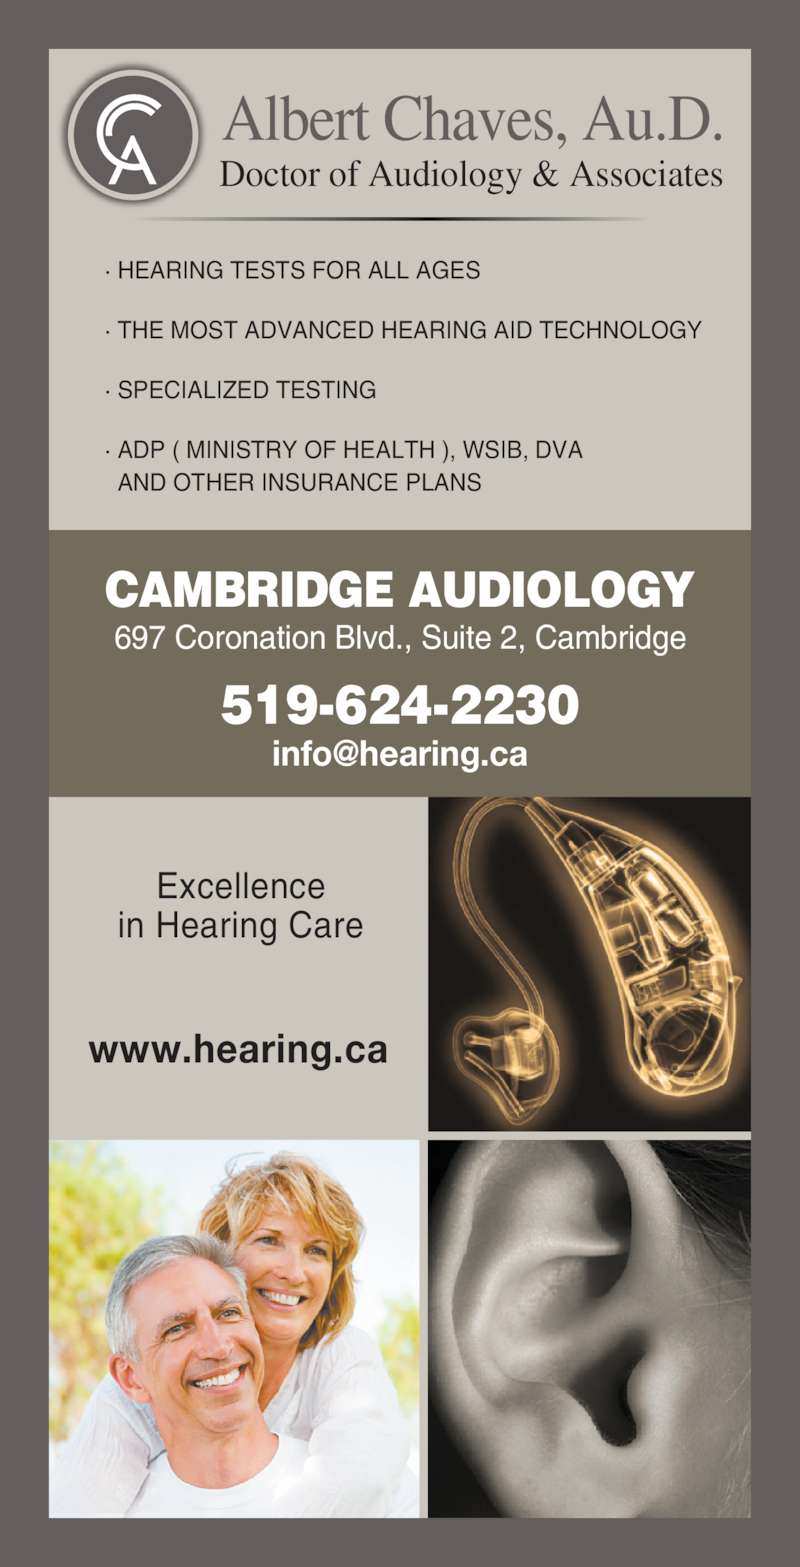 Cambridge Audiology (519-624-2230) - Display Ad - Albert Chaves, Au.D. Doctor of Audiology & Associates Excellence in Hearing Care www.hearing.ca ? HEARING TESTS FOR ALL AGES ? THE MOST ADVANCED HEARING AID TECHNOLOGY ? SPECIALIZED TESTING ? ADP ( MINISTRY OF HEALTH ), WSIB, DVA   AND OTHER INSURANCE PLANS CAMBRIDGE AUDIOLOGY 697 Coronation Blvd., Suite 2, Cambridge 519-624-2230